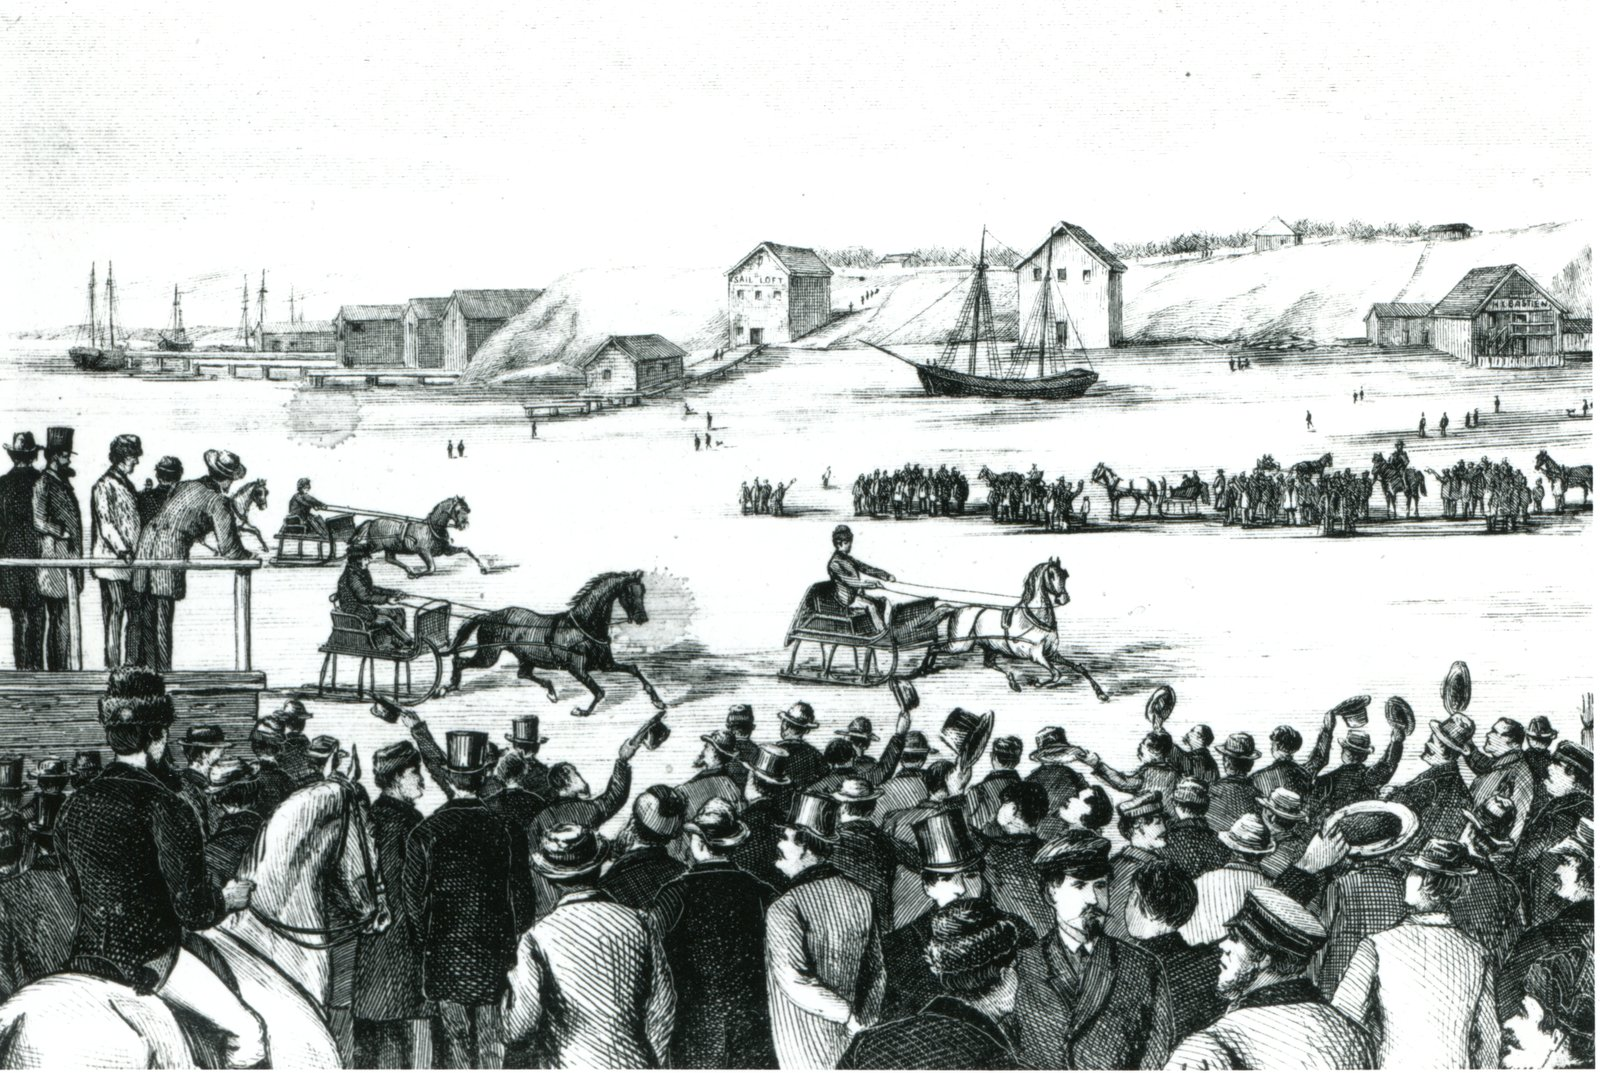 Winter sport on Hamilton Harbour, 1863